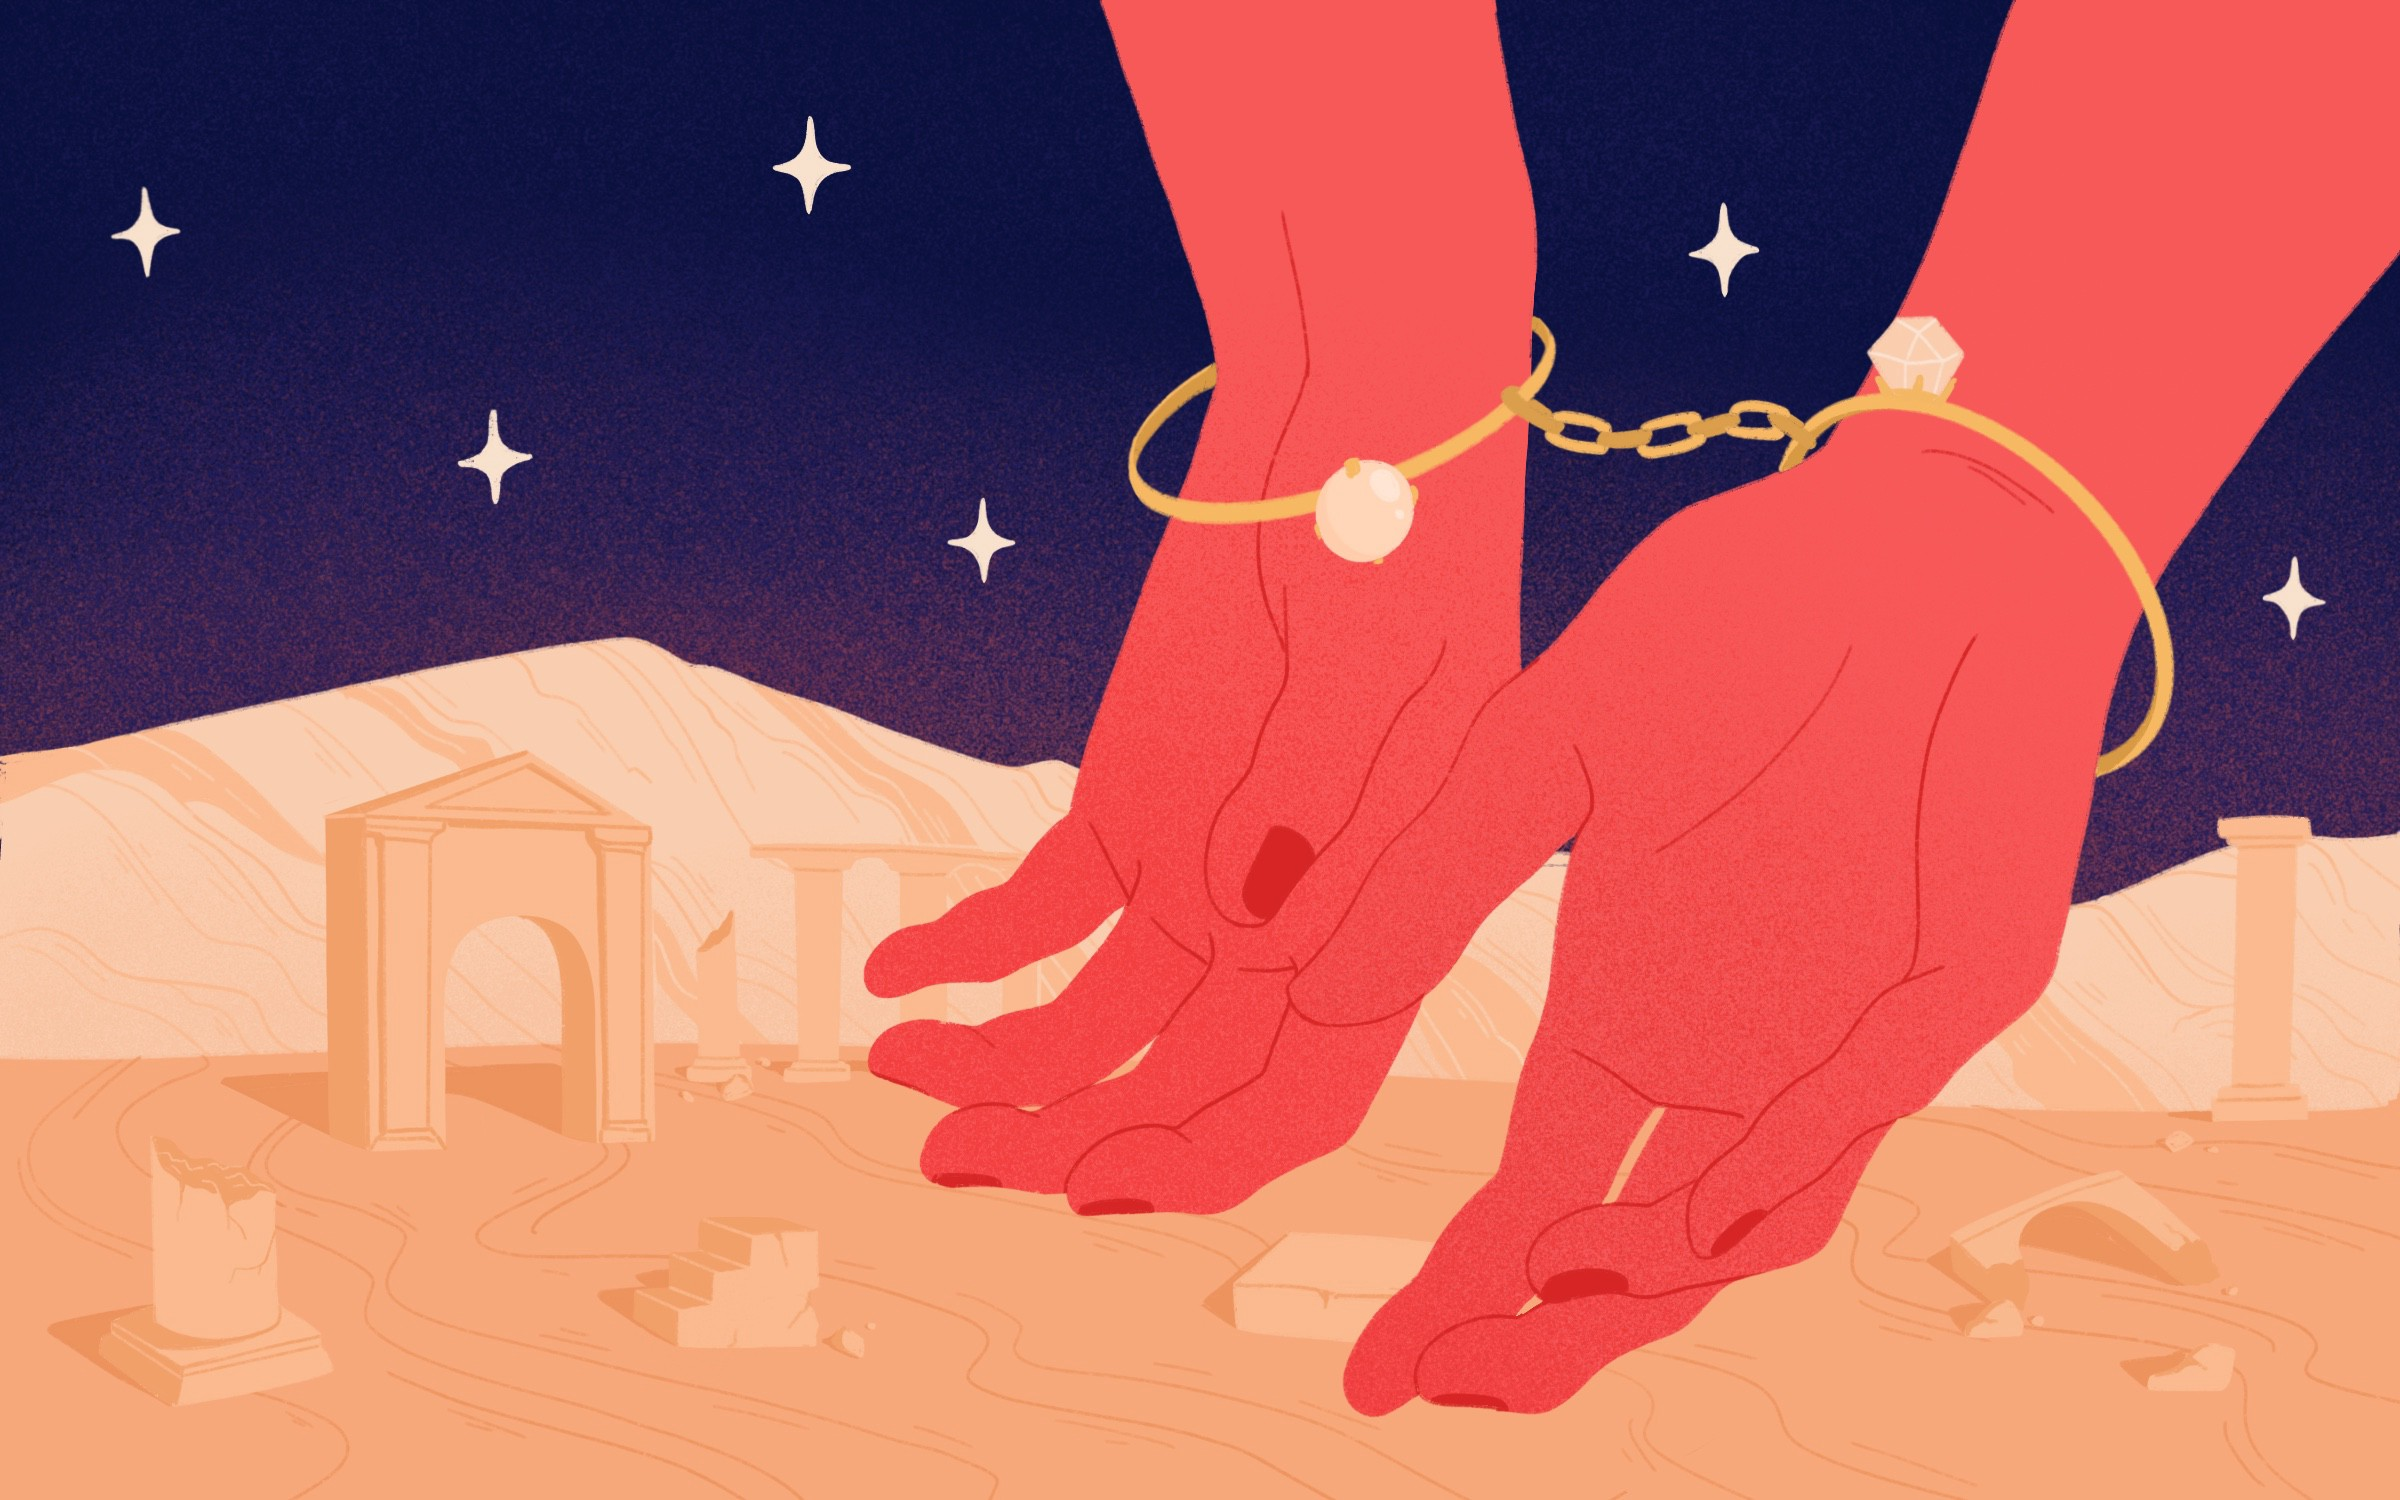 How Looking for the Perfect Wedding Ring Got Me Handcuffed in Lebanon